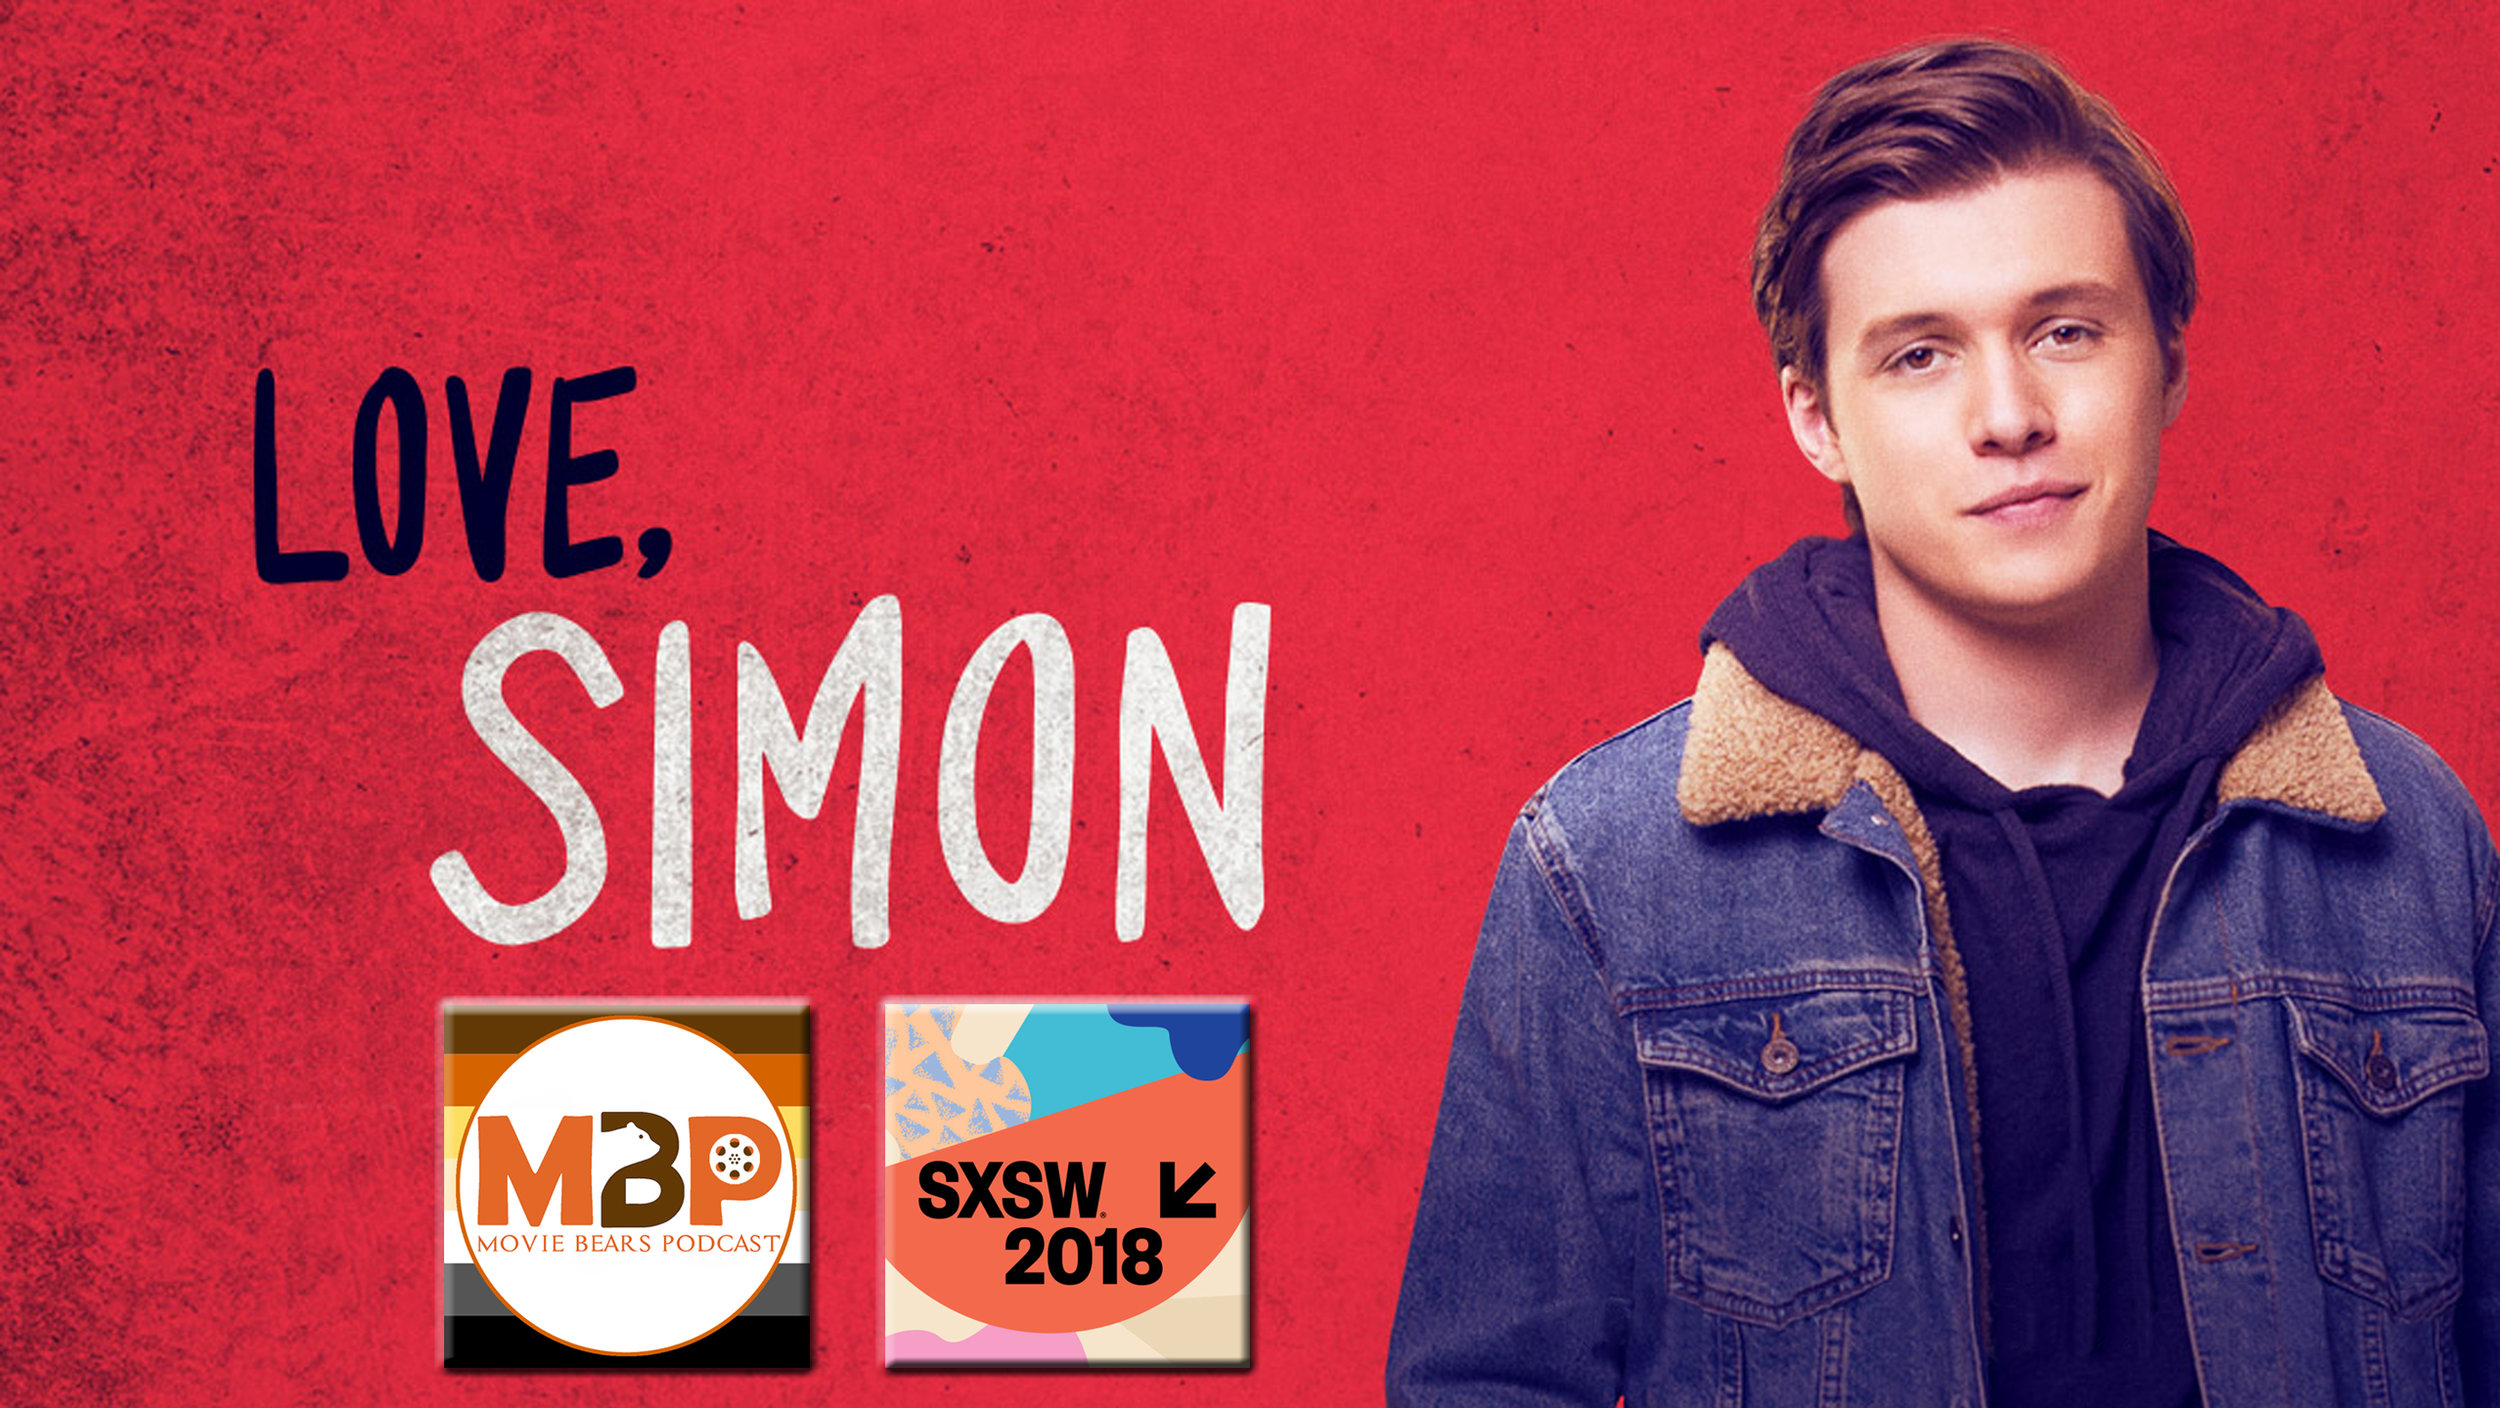 MBP e275 - 'Love, Simon' and SXSW 2018 Highlights (3/23/18)    'Love, Simon' is your classic teen rom-com... but this time, starring a gay high school kid figuring out his place in the world, in his family, in his circle of friends, and in the heart of the anonymous pen pal he has started crushing on. In this week's episode, the MBP boys and special guest Matt Goad of YoUTube's 'Cocktail Moment' discuss this film's impact, both as a mainstream piece of entertainment and as a step forward for the LGBTQ community. PLUS: join us for part one of our SXSW 2018 coverage as we discuss some of our favorite moments from the festival!